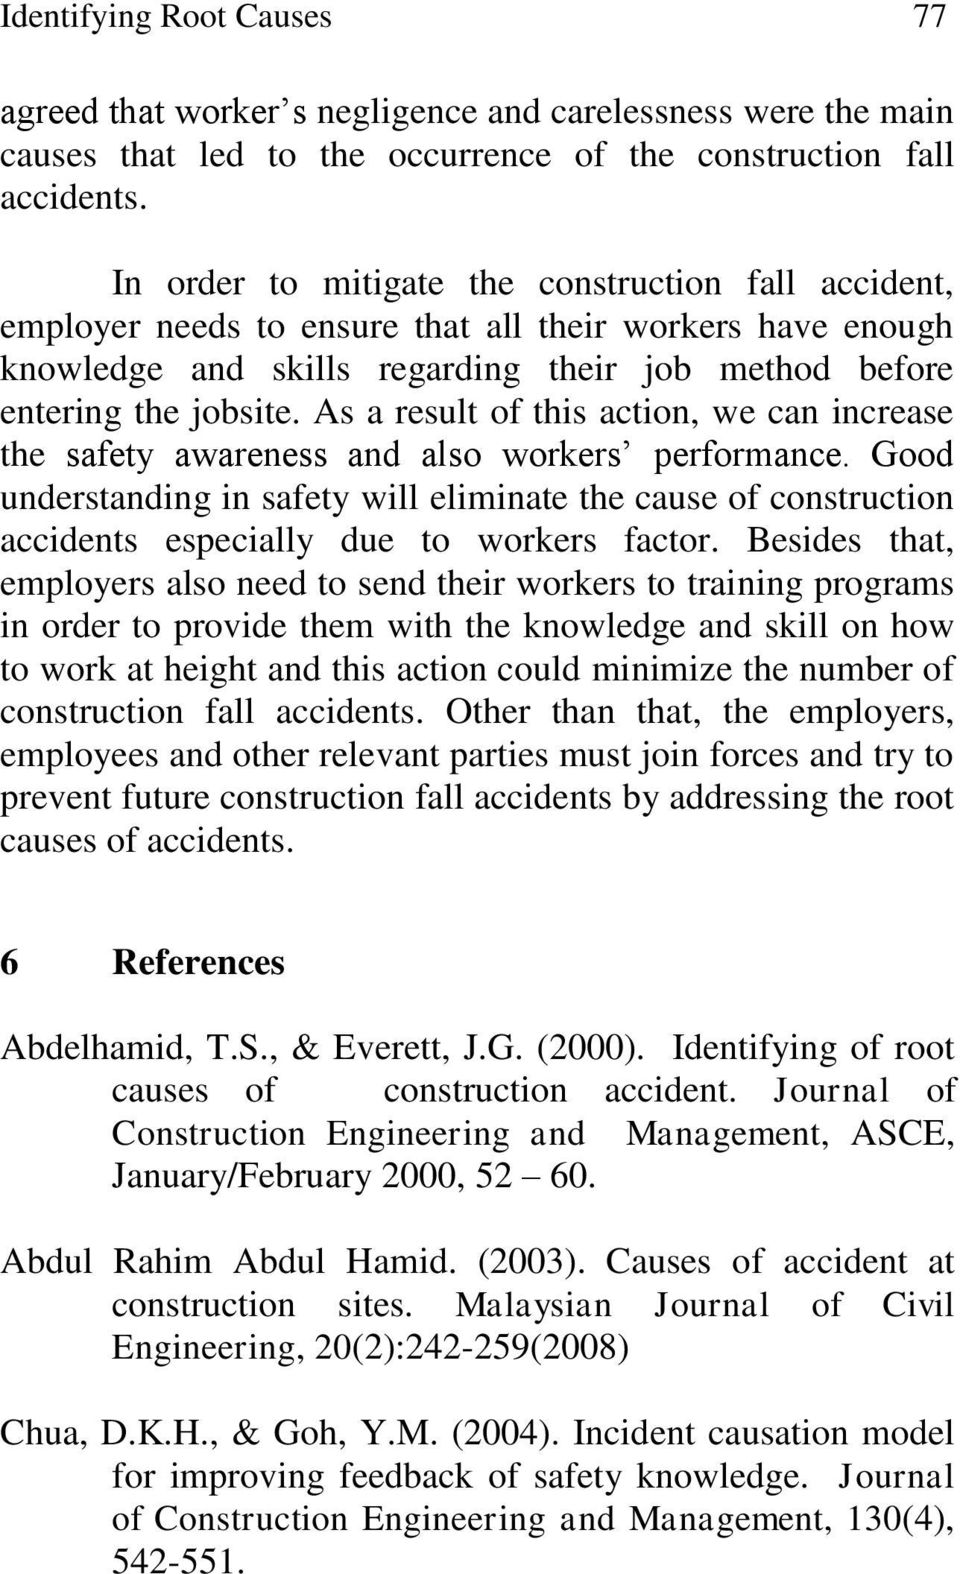 abdelhamid t and everett j 2000 1 introduction construction has been recognized as a dangerous occupation, and a number of studies have been undertaken to identify the associated risks and to devise mitigation strategies ( abdelhamid & everett, 2000 huang & hinze, 2003 sorock, smith, & goldoft, 1993 .